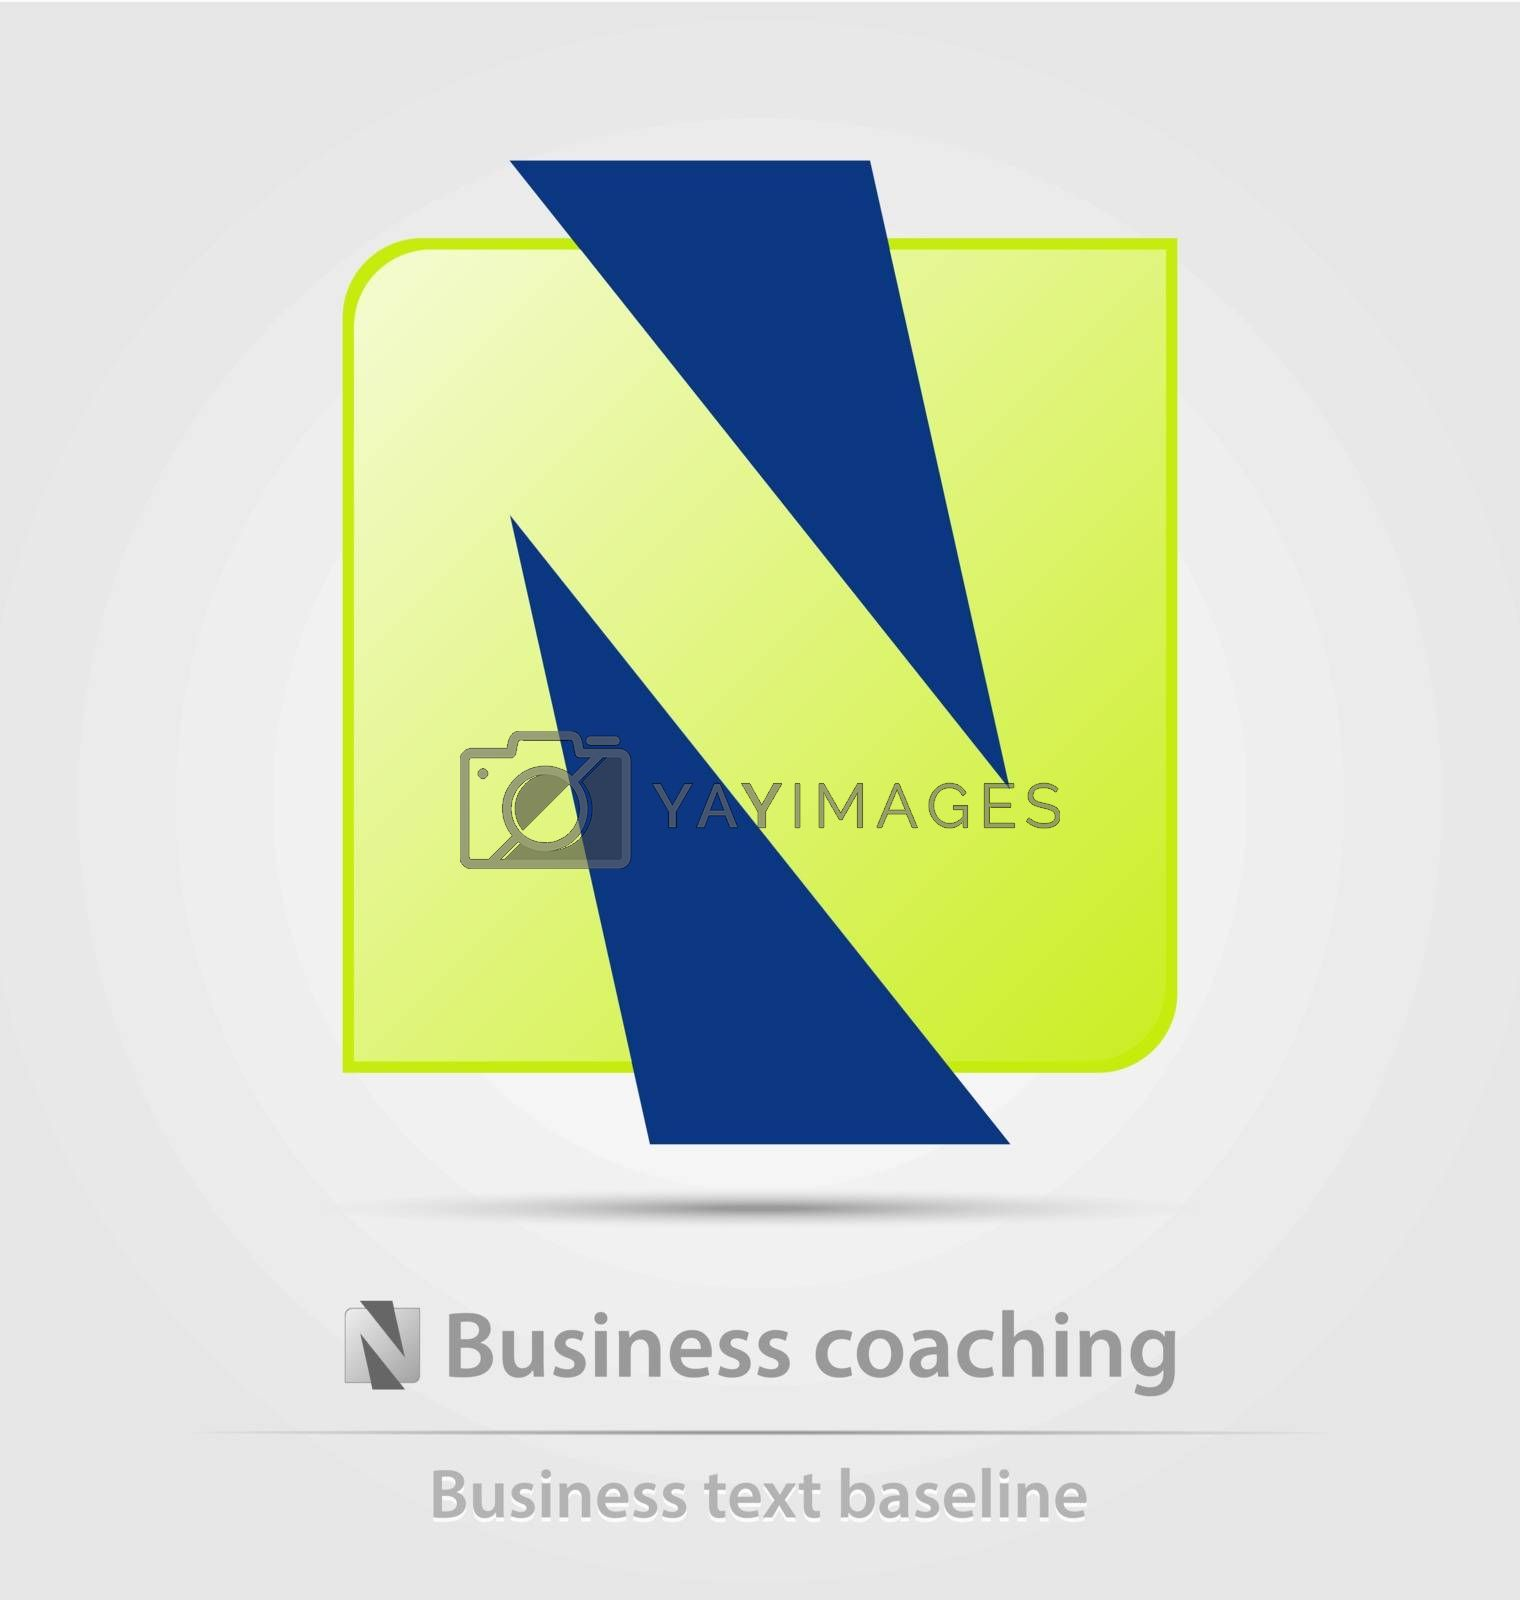 Business coaching business icon for creative design tasks